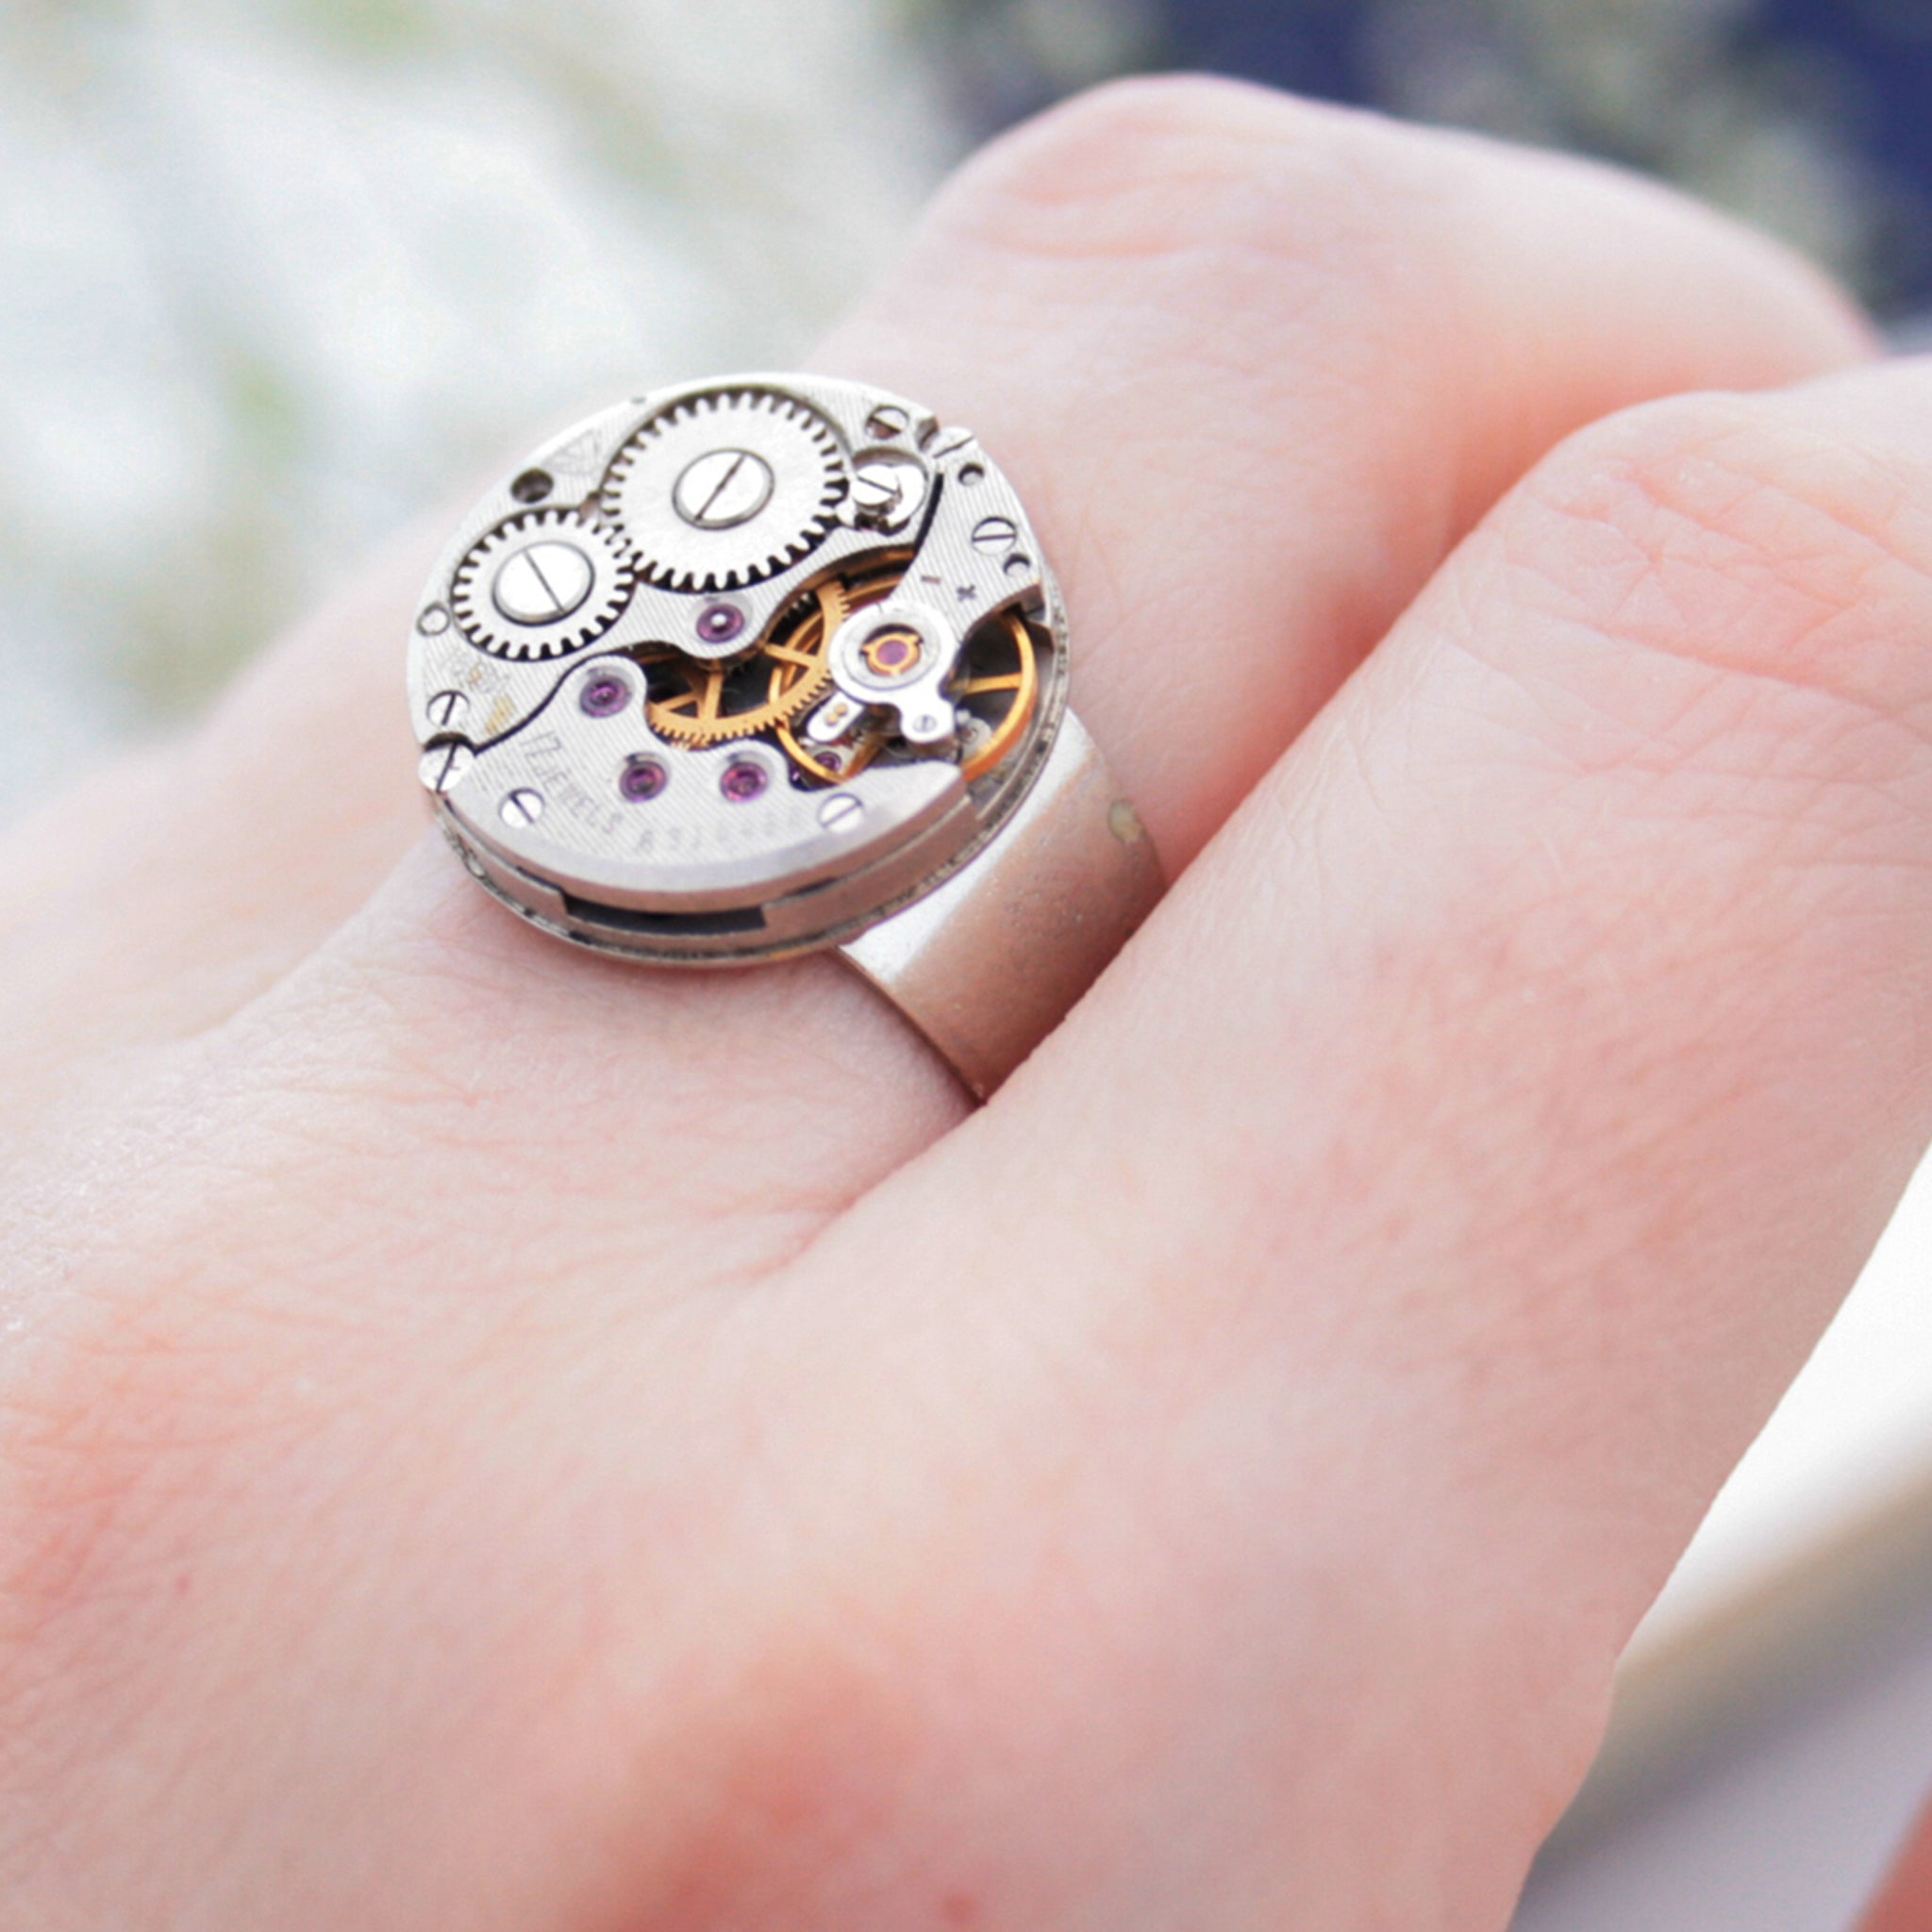 Round Steampunk Mens Signet Ring made of watch inside on hand